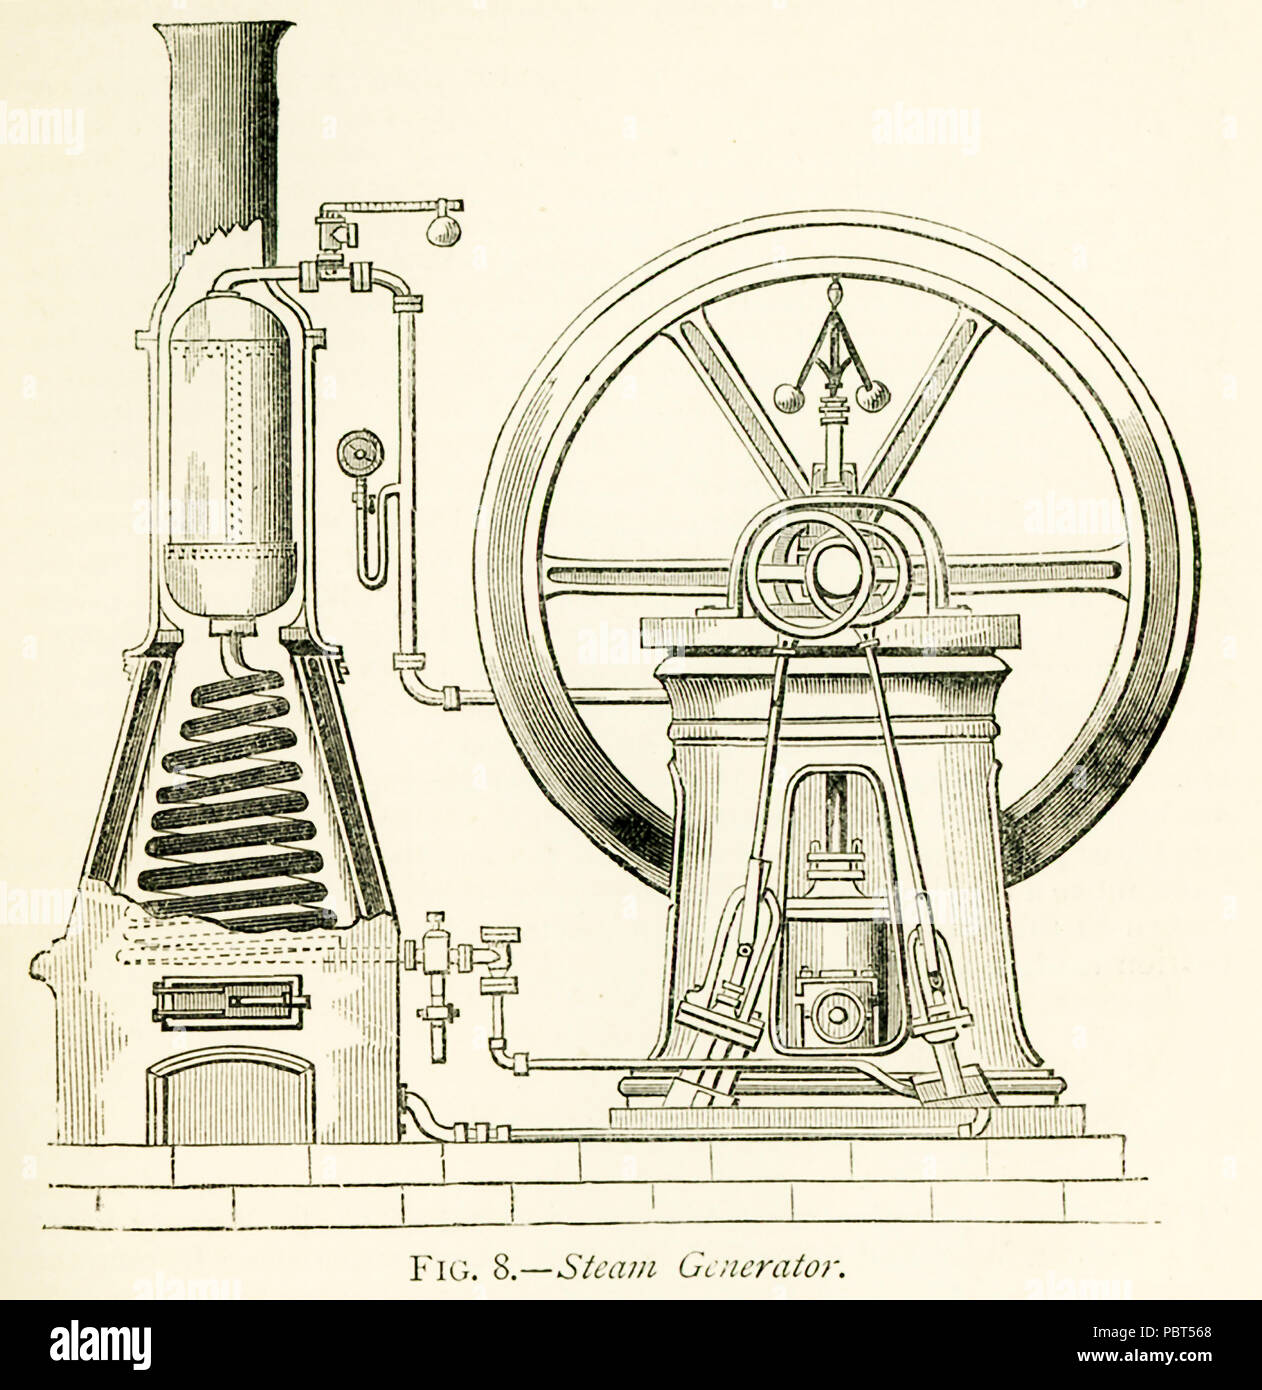 This illustration dates to the 1870s and shows a steam generator - here an arrangement for quickly generationg and superheating steam, in connection with a high-pressure engine. - Stock Image